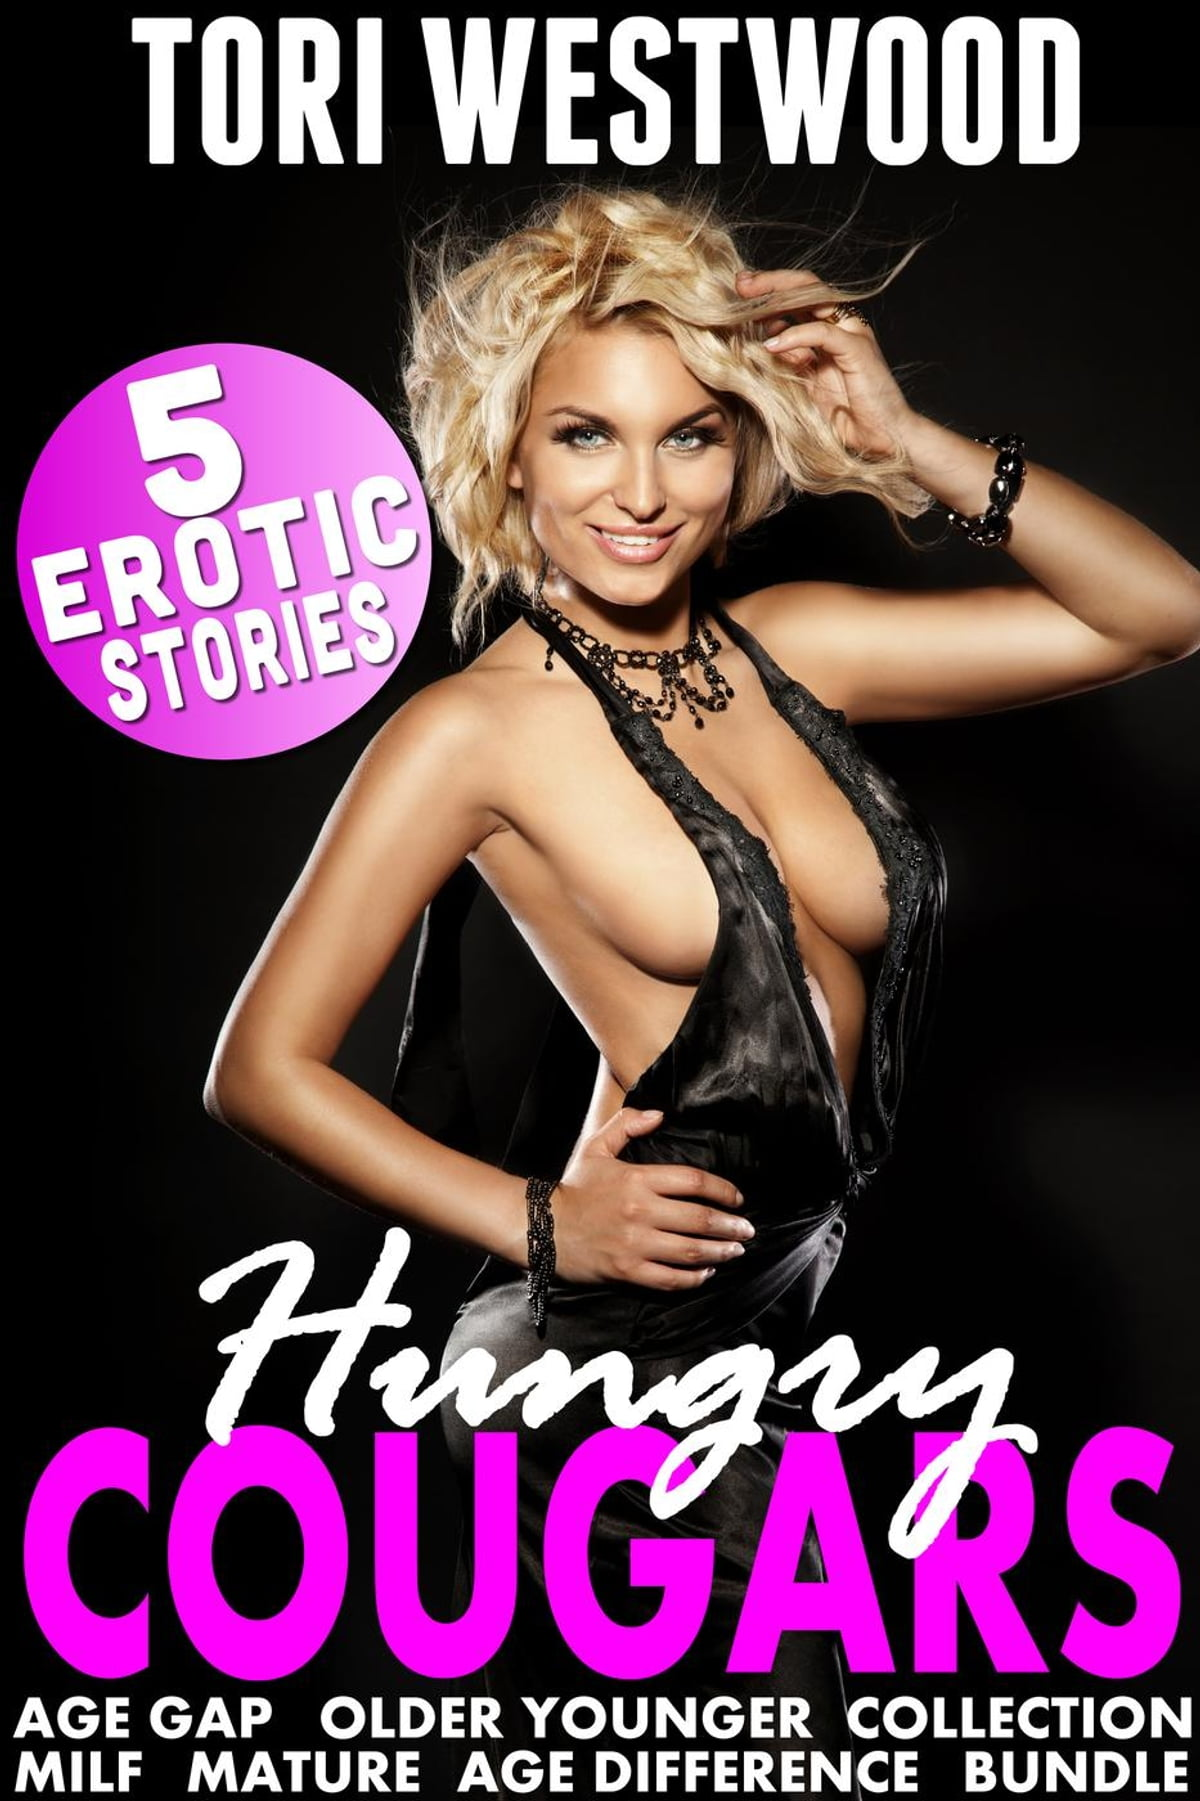 Hungry Cougars 1 : 5 Erotic Stories (Age Gap Older Younger Collection MILF  Mature Age Difference Bundle Erotica) eBook by Tori Westwood -  9781536584288 ...